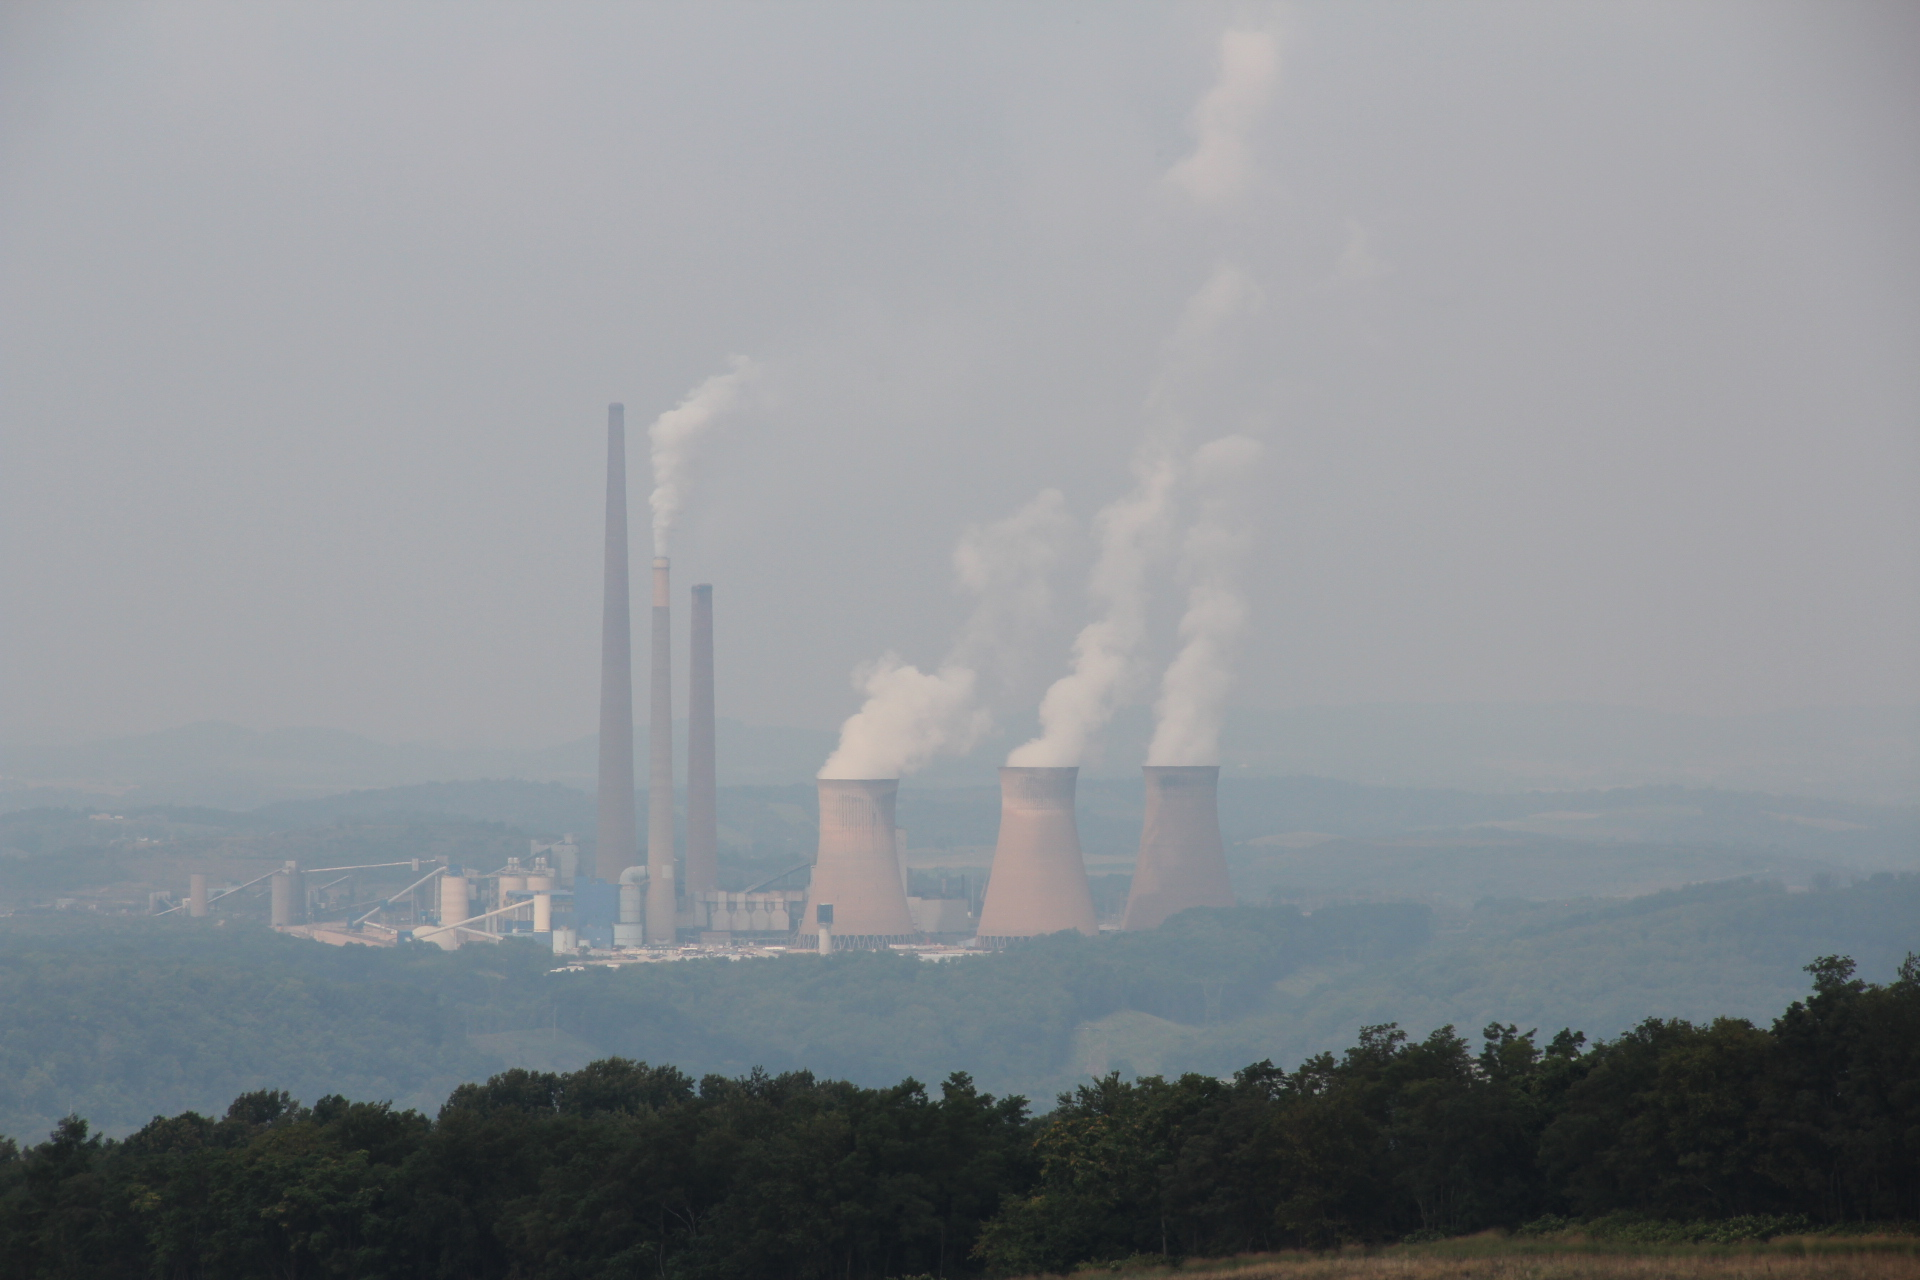 Federal Air Rules Force Coal Plants To Clean Up Or Shut Down